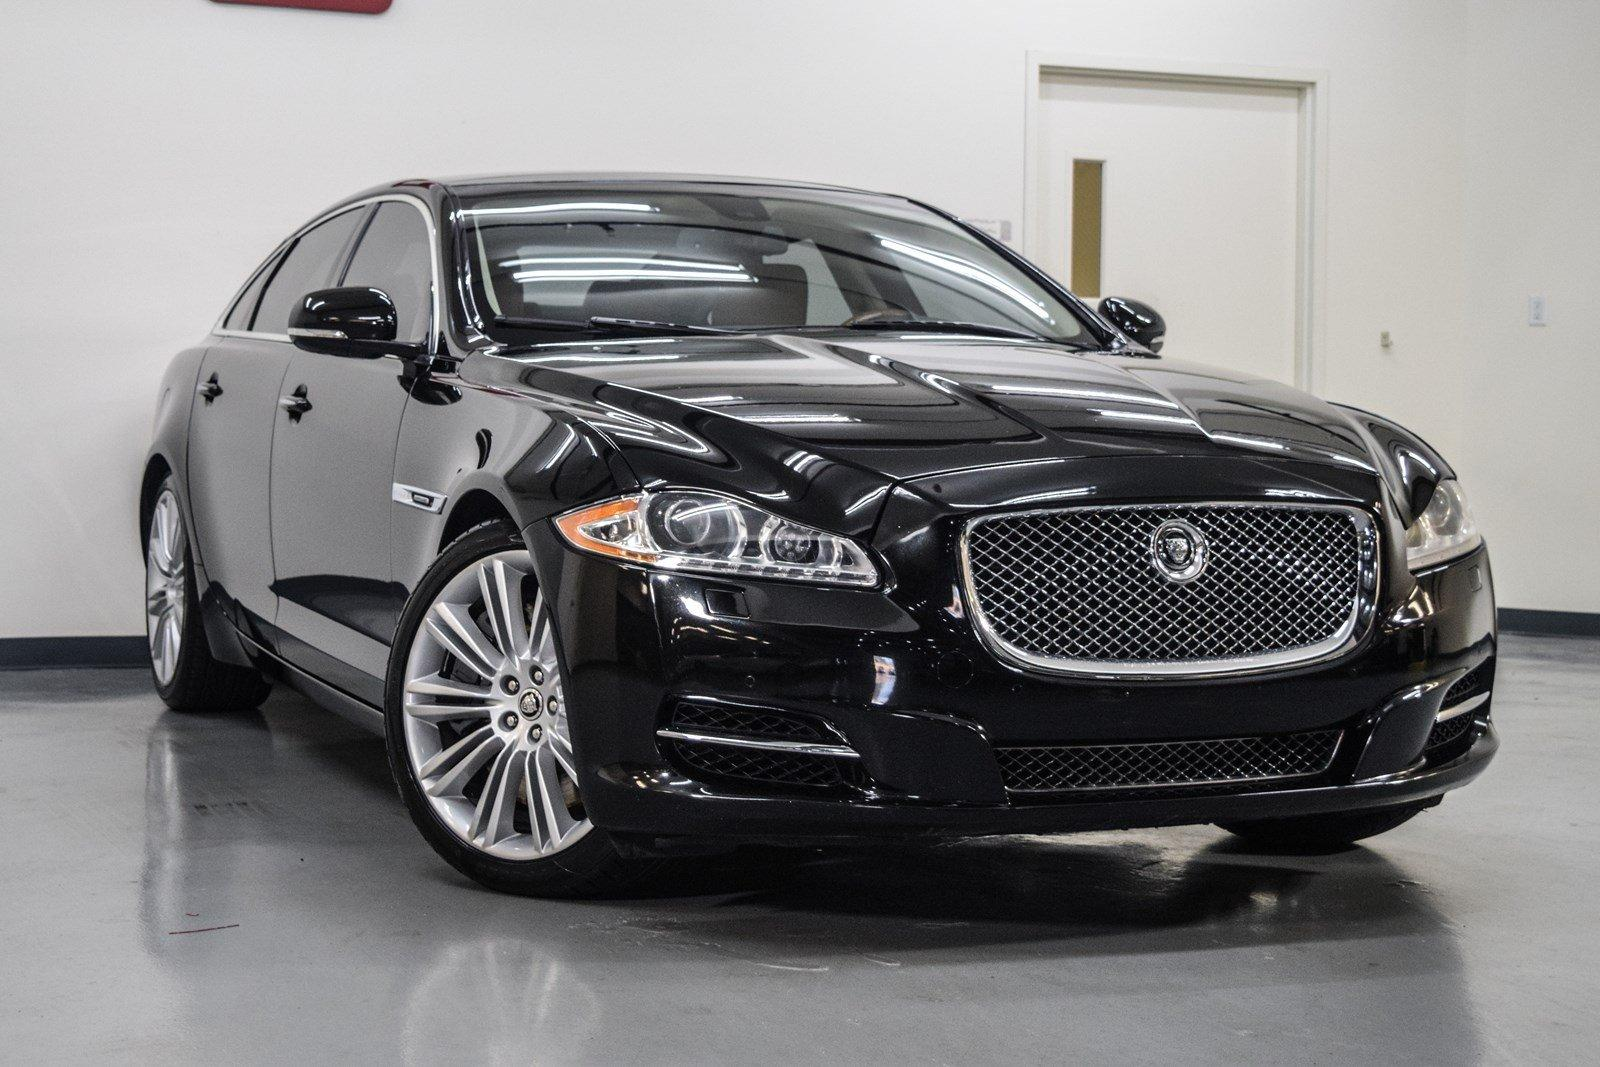 2011 Jaguar Xj Xjl Supercharged Stock Vo2351 For Sale